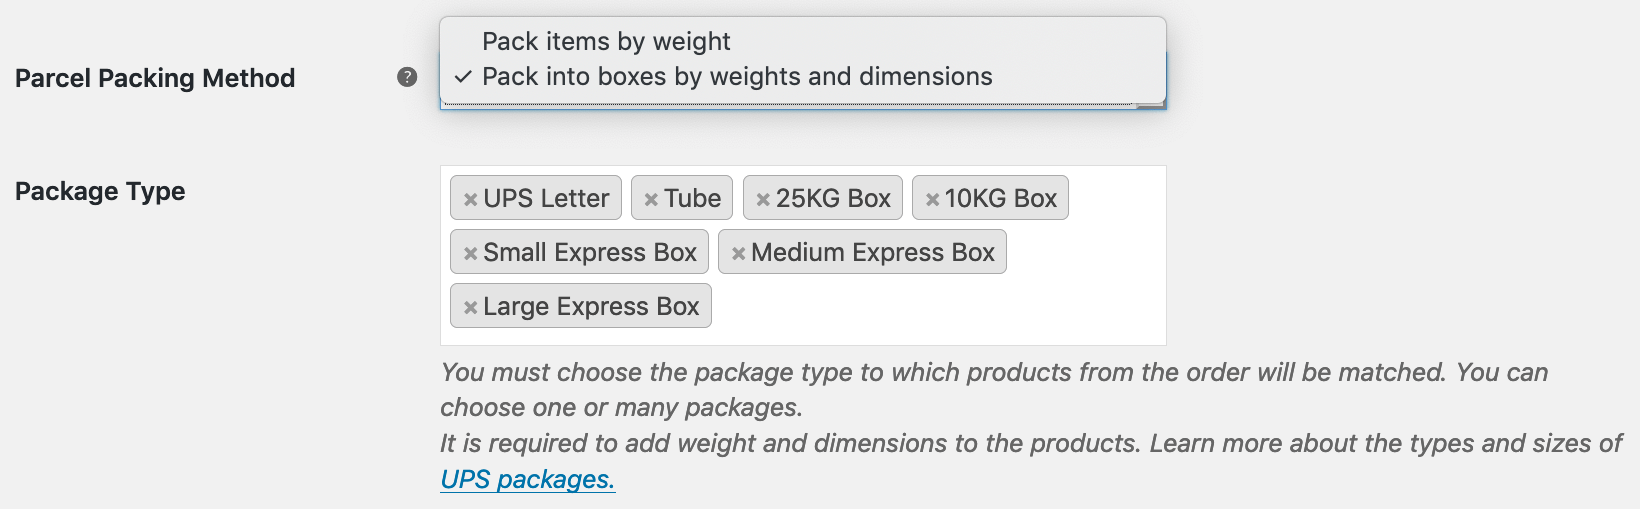 UPS Live Rates - pack into boxes by weights and dimensions